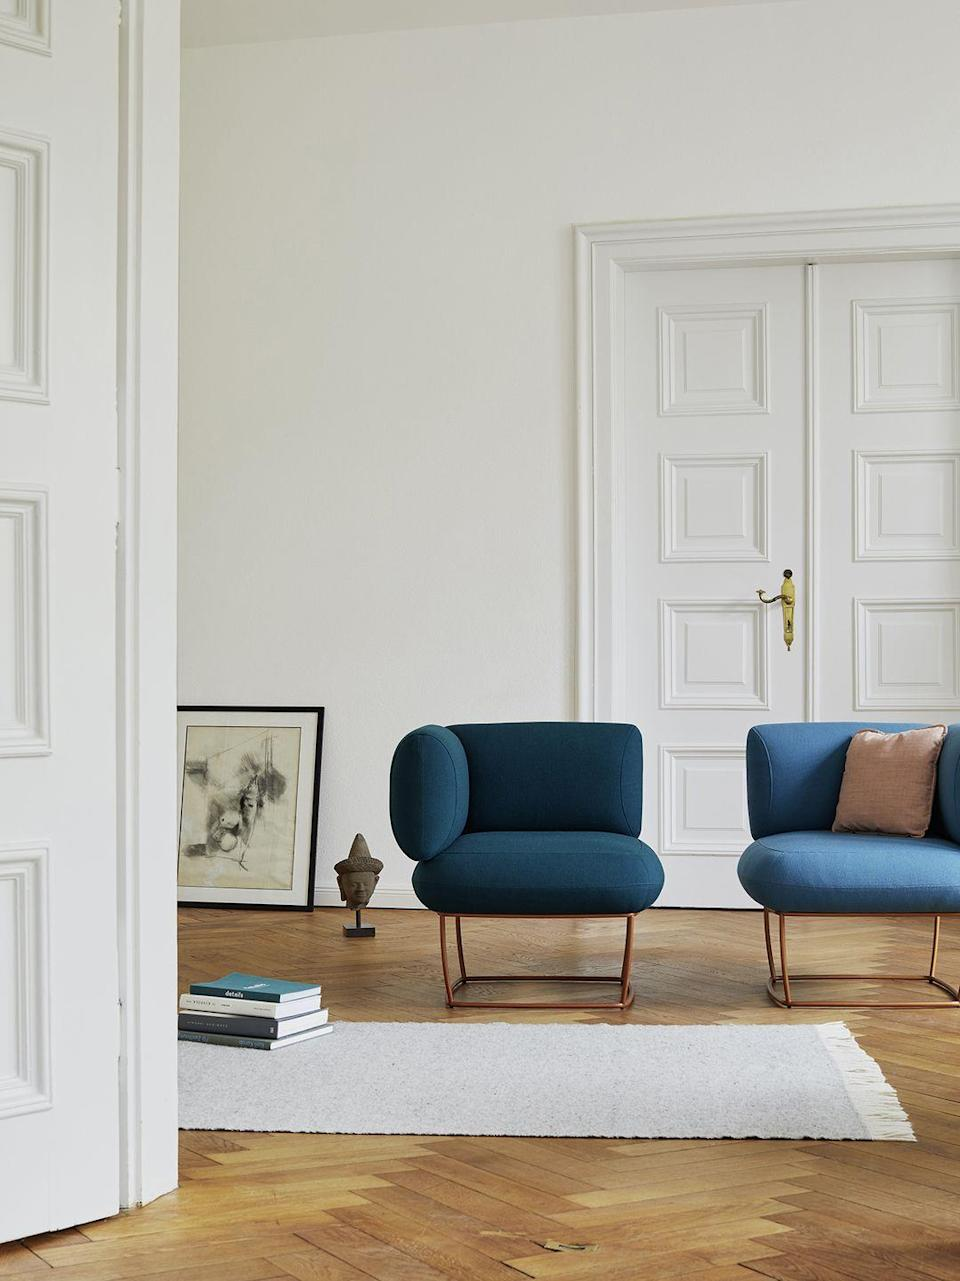 """<p>Austrian architect and designer Nina Mair's latest launch for Italian brand LaCividina is the user-friendly 'Bernard' collection. The lounge chair is the highlight of the series – its back and armrest are the same height, allowing sitters to choose the direction they want to face without having to move the furniture. From approx £1,130, <a href=""""https://lacividina.com/"""" rel=""""nofollow noopener"""" target=""""_blank"""" data-ylk=""""slk:lacividina.com"""" class=""""link rapid-noclick-resp"""">lacividina.com</a></p>"""